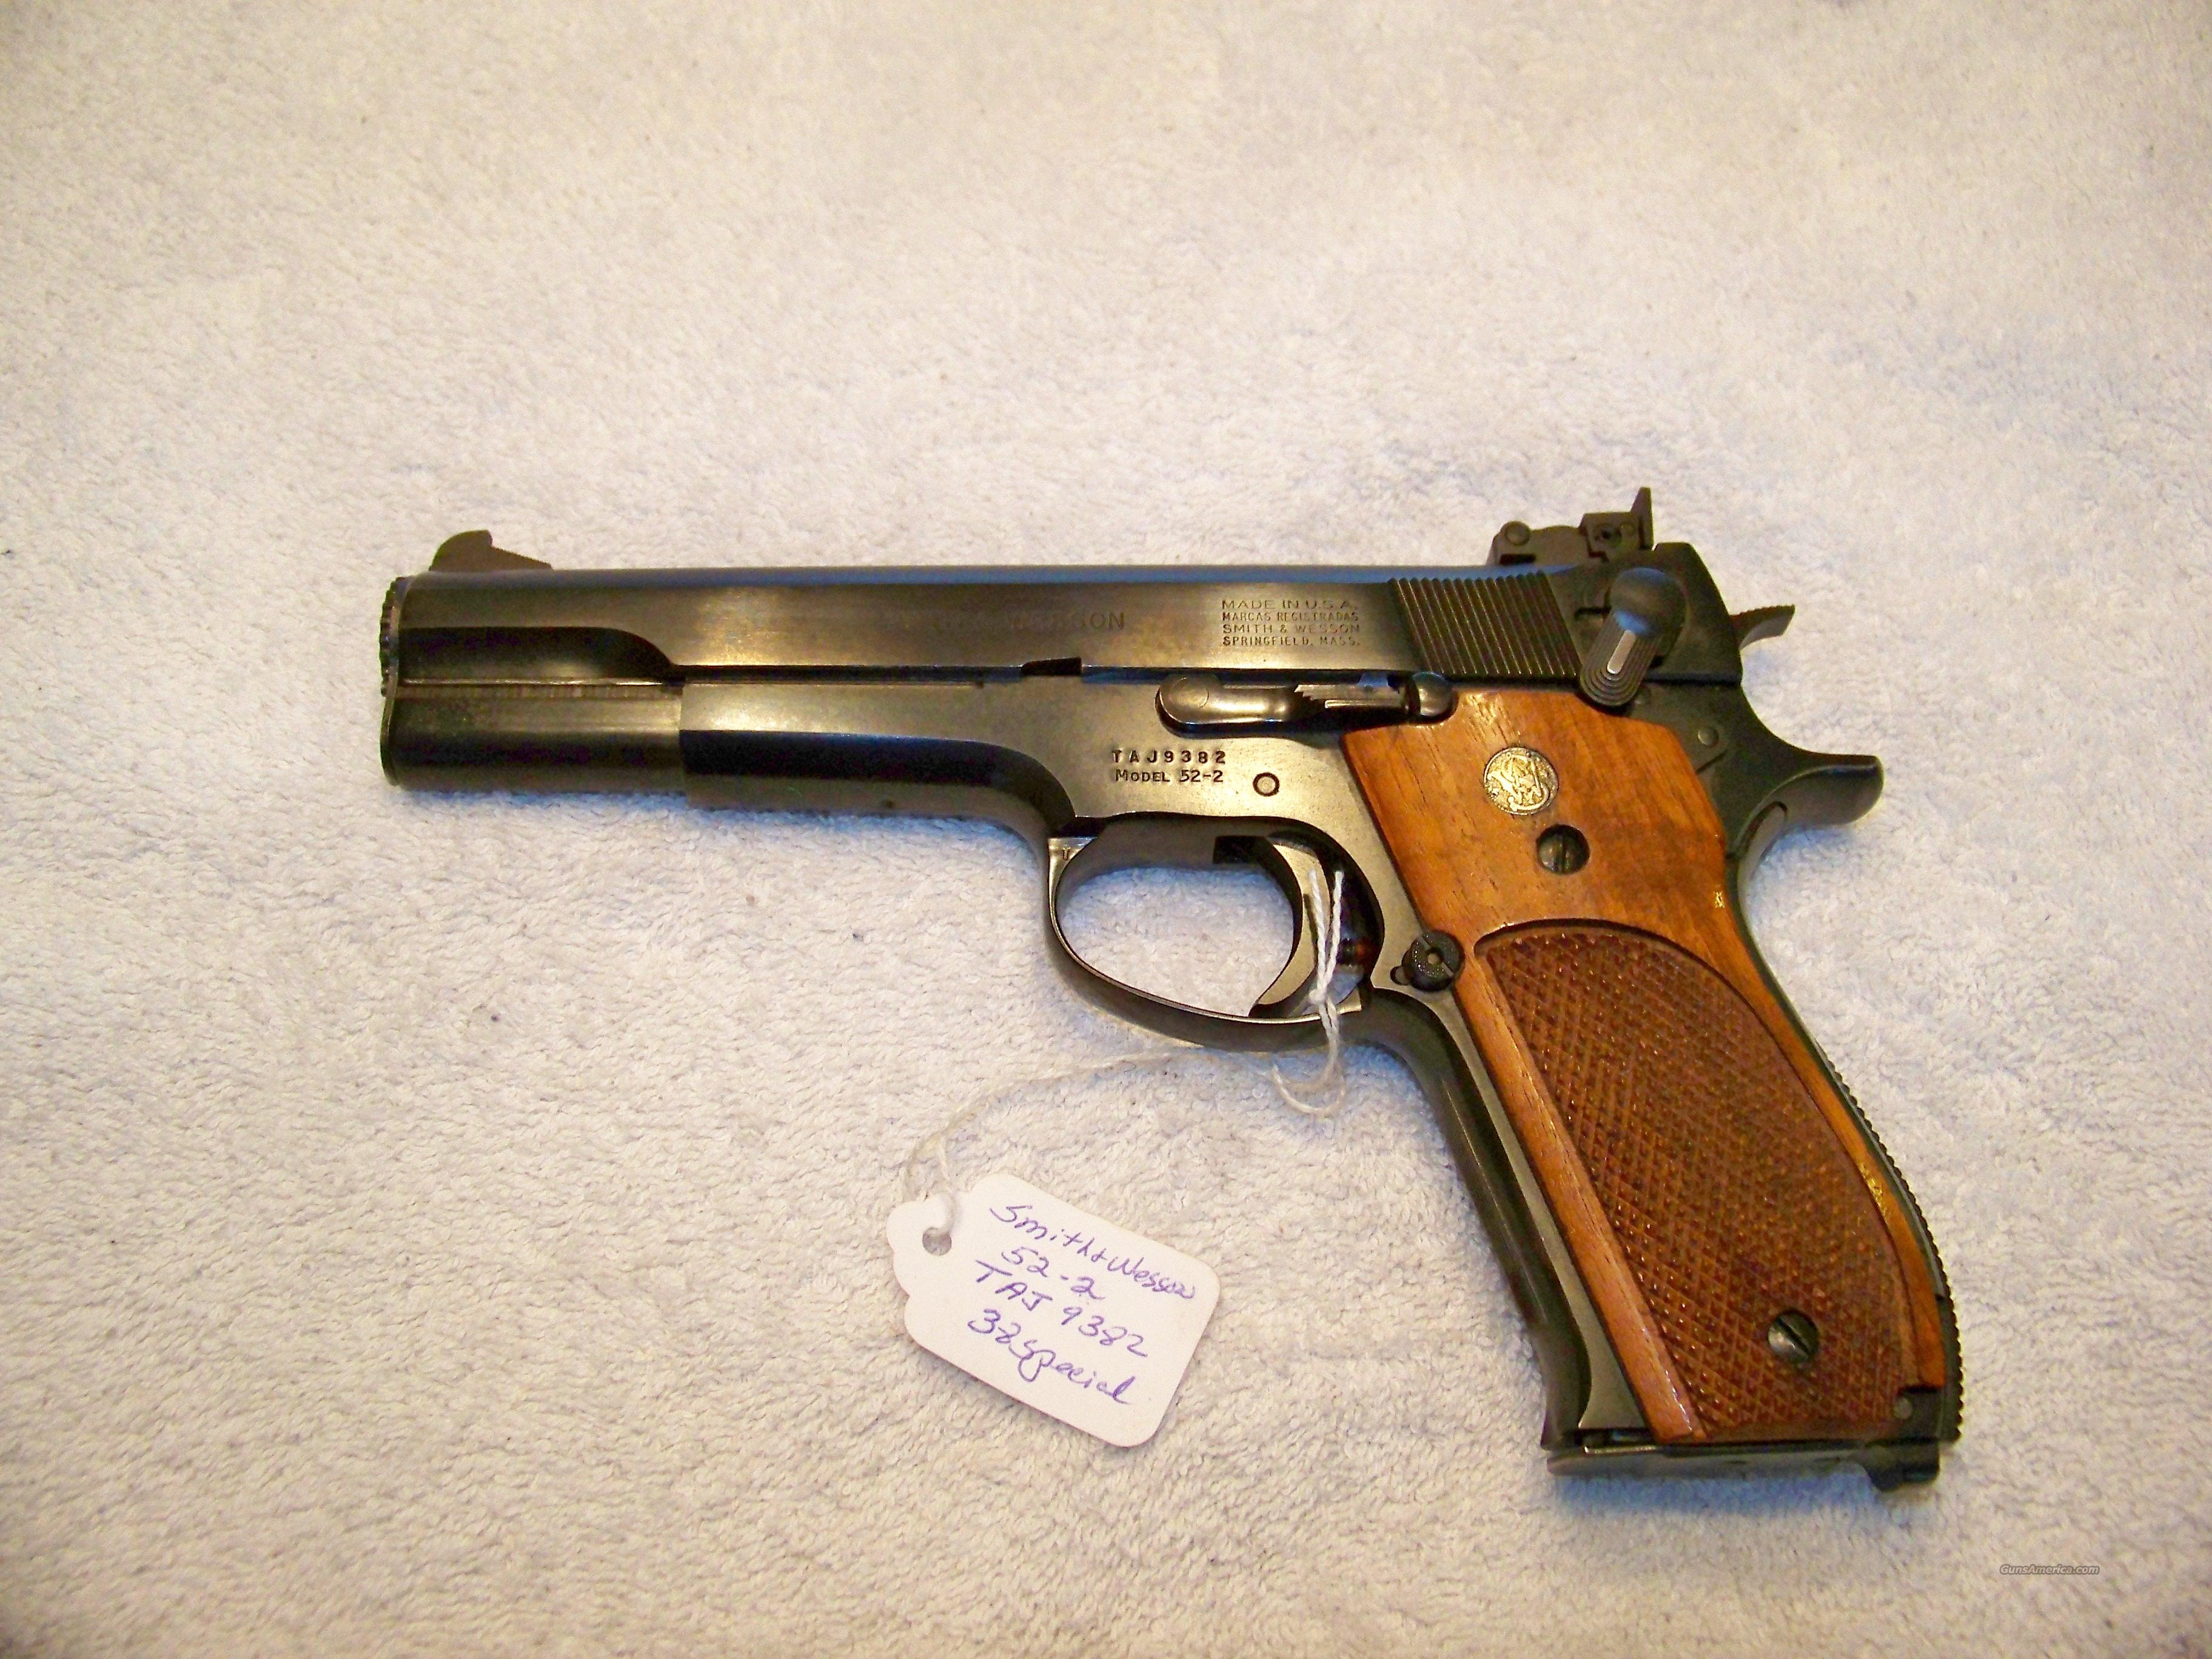 SMITH & WESSON MODEL 52-2  Guns > Pistols > Smith & Wesson Pistols - Autos > Steel Frame